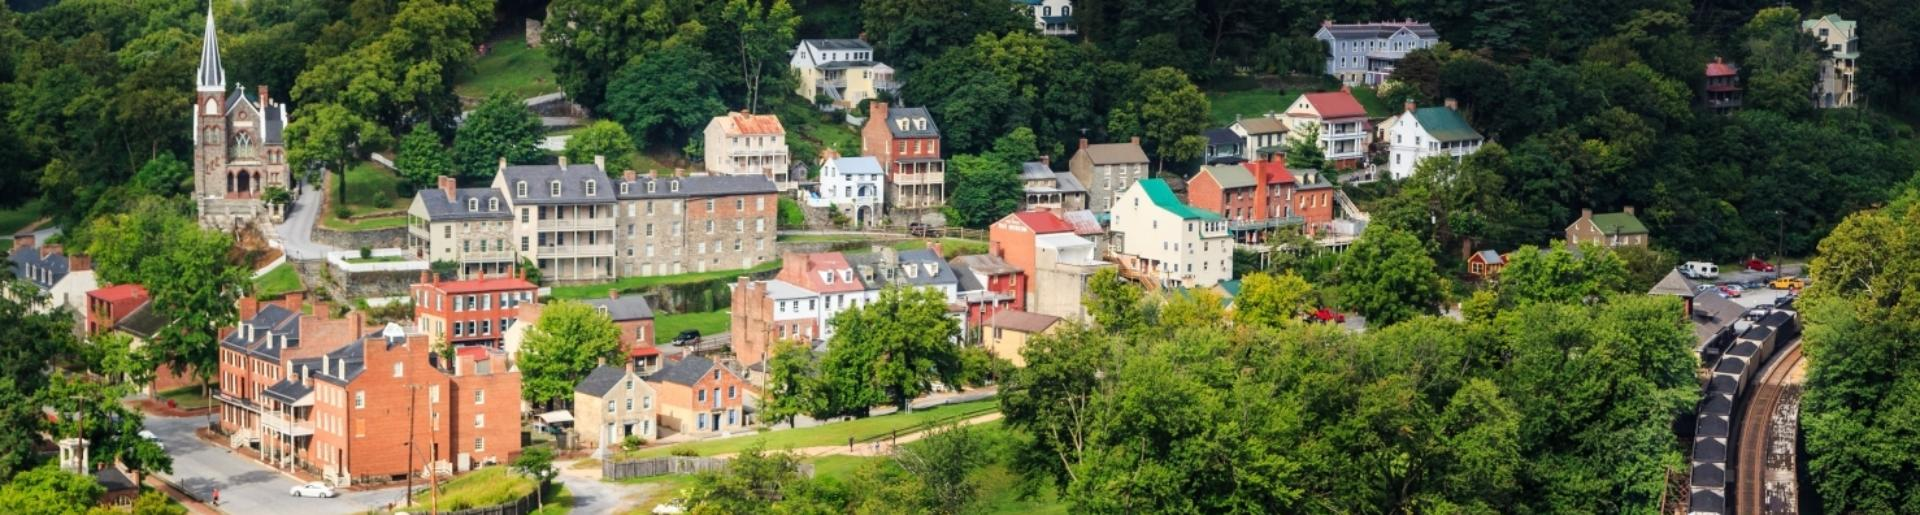 Scenic view of historic Harpers Ferry West Virginia from Maryland Heights Trail